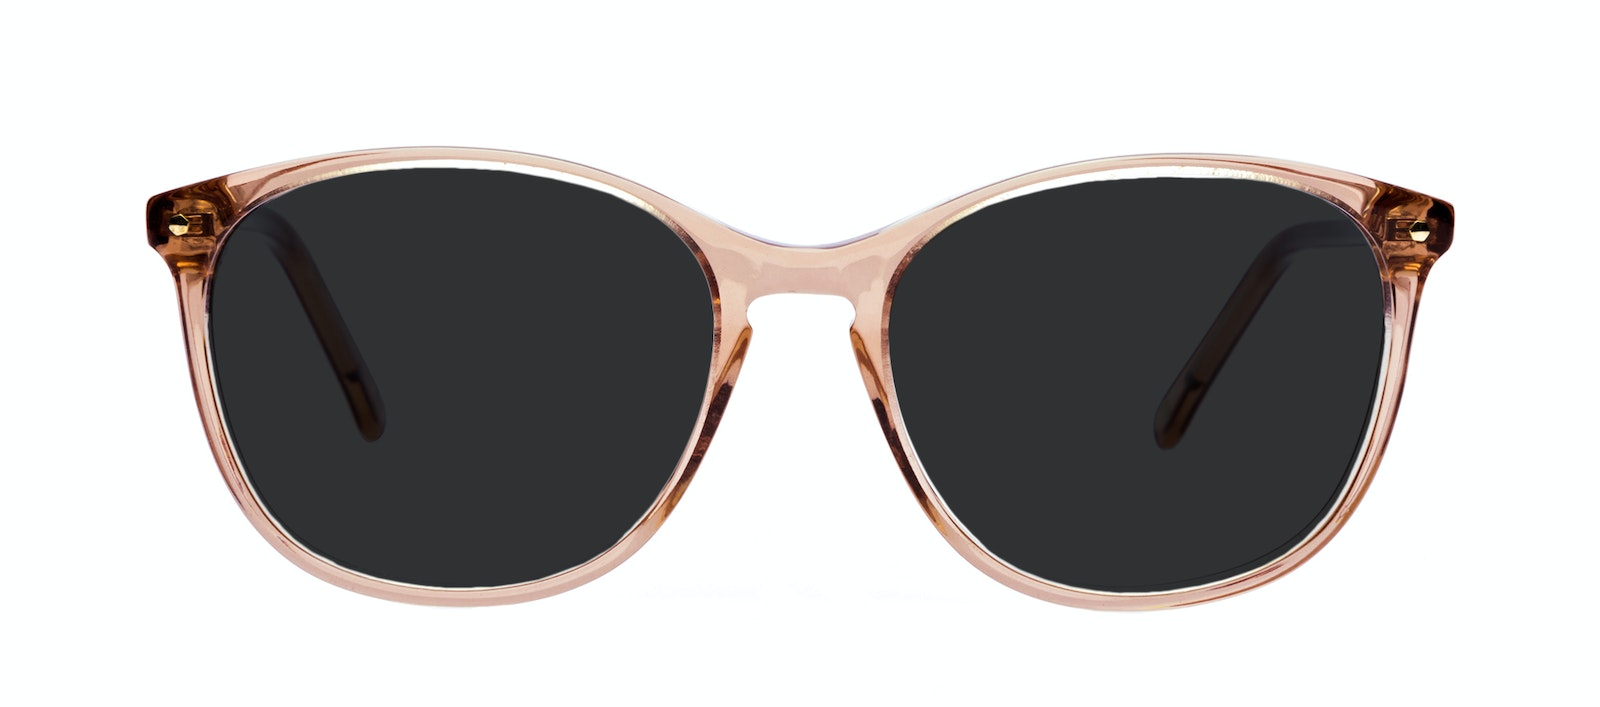 Affordable Fashion Glasses Round Sunglasses Women Versa Rose Front